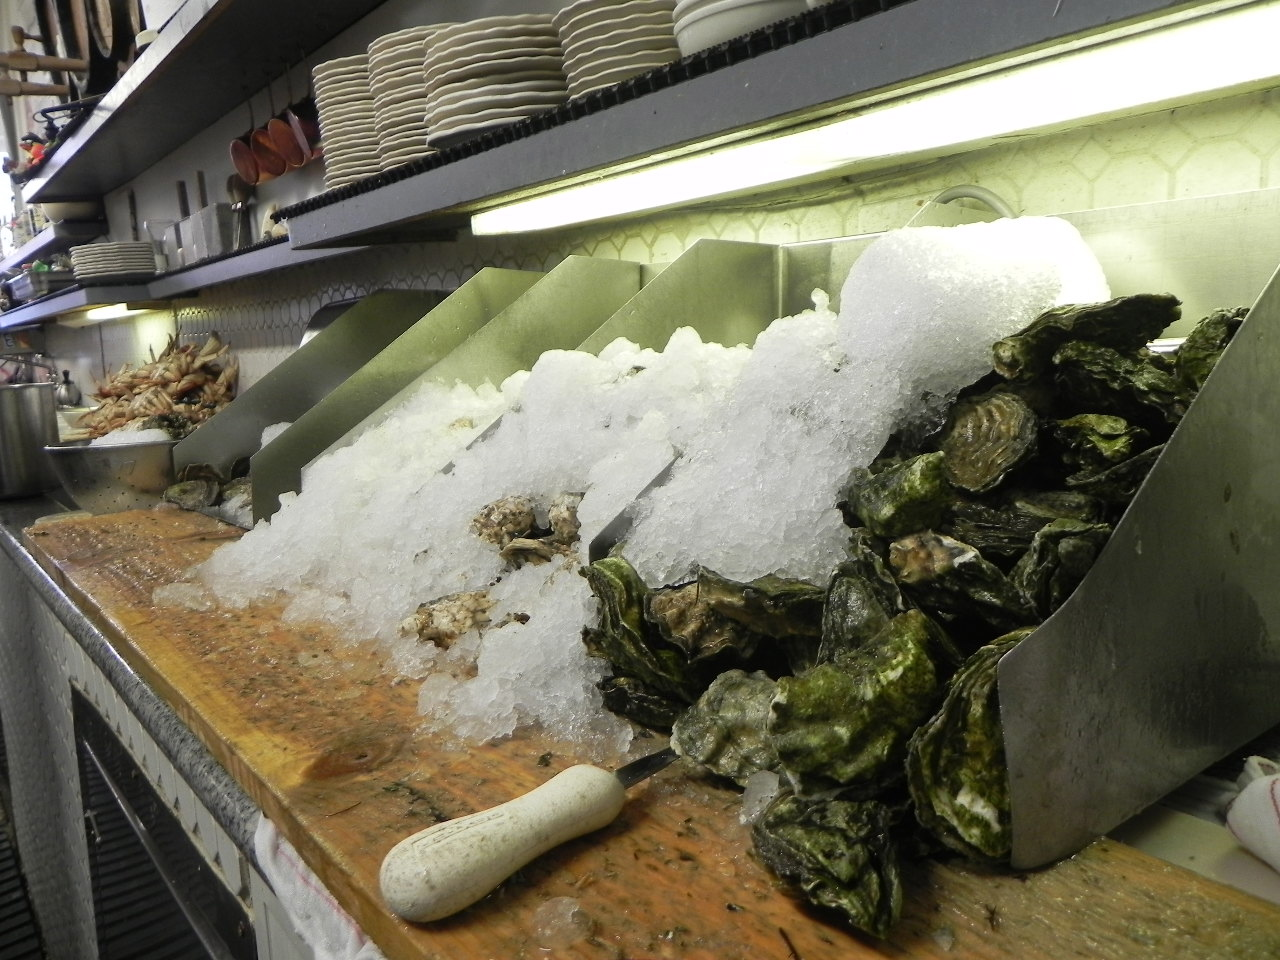 Oysters packed on ice. A shucking tool is the best way to crack one open. Photo: Gina Scialabba